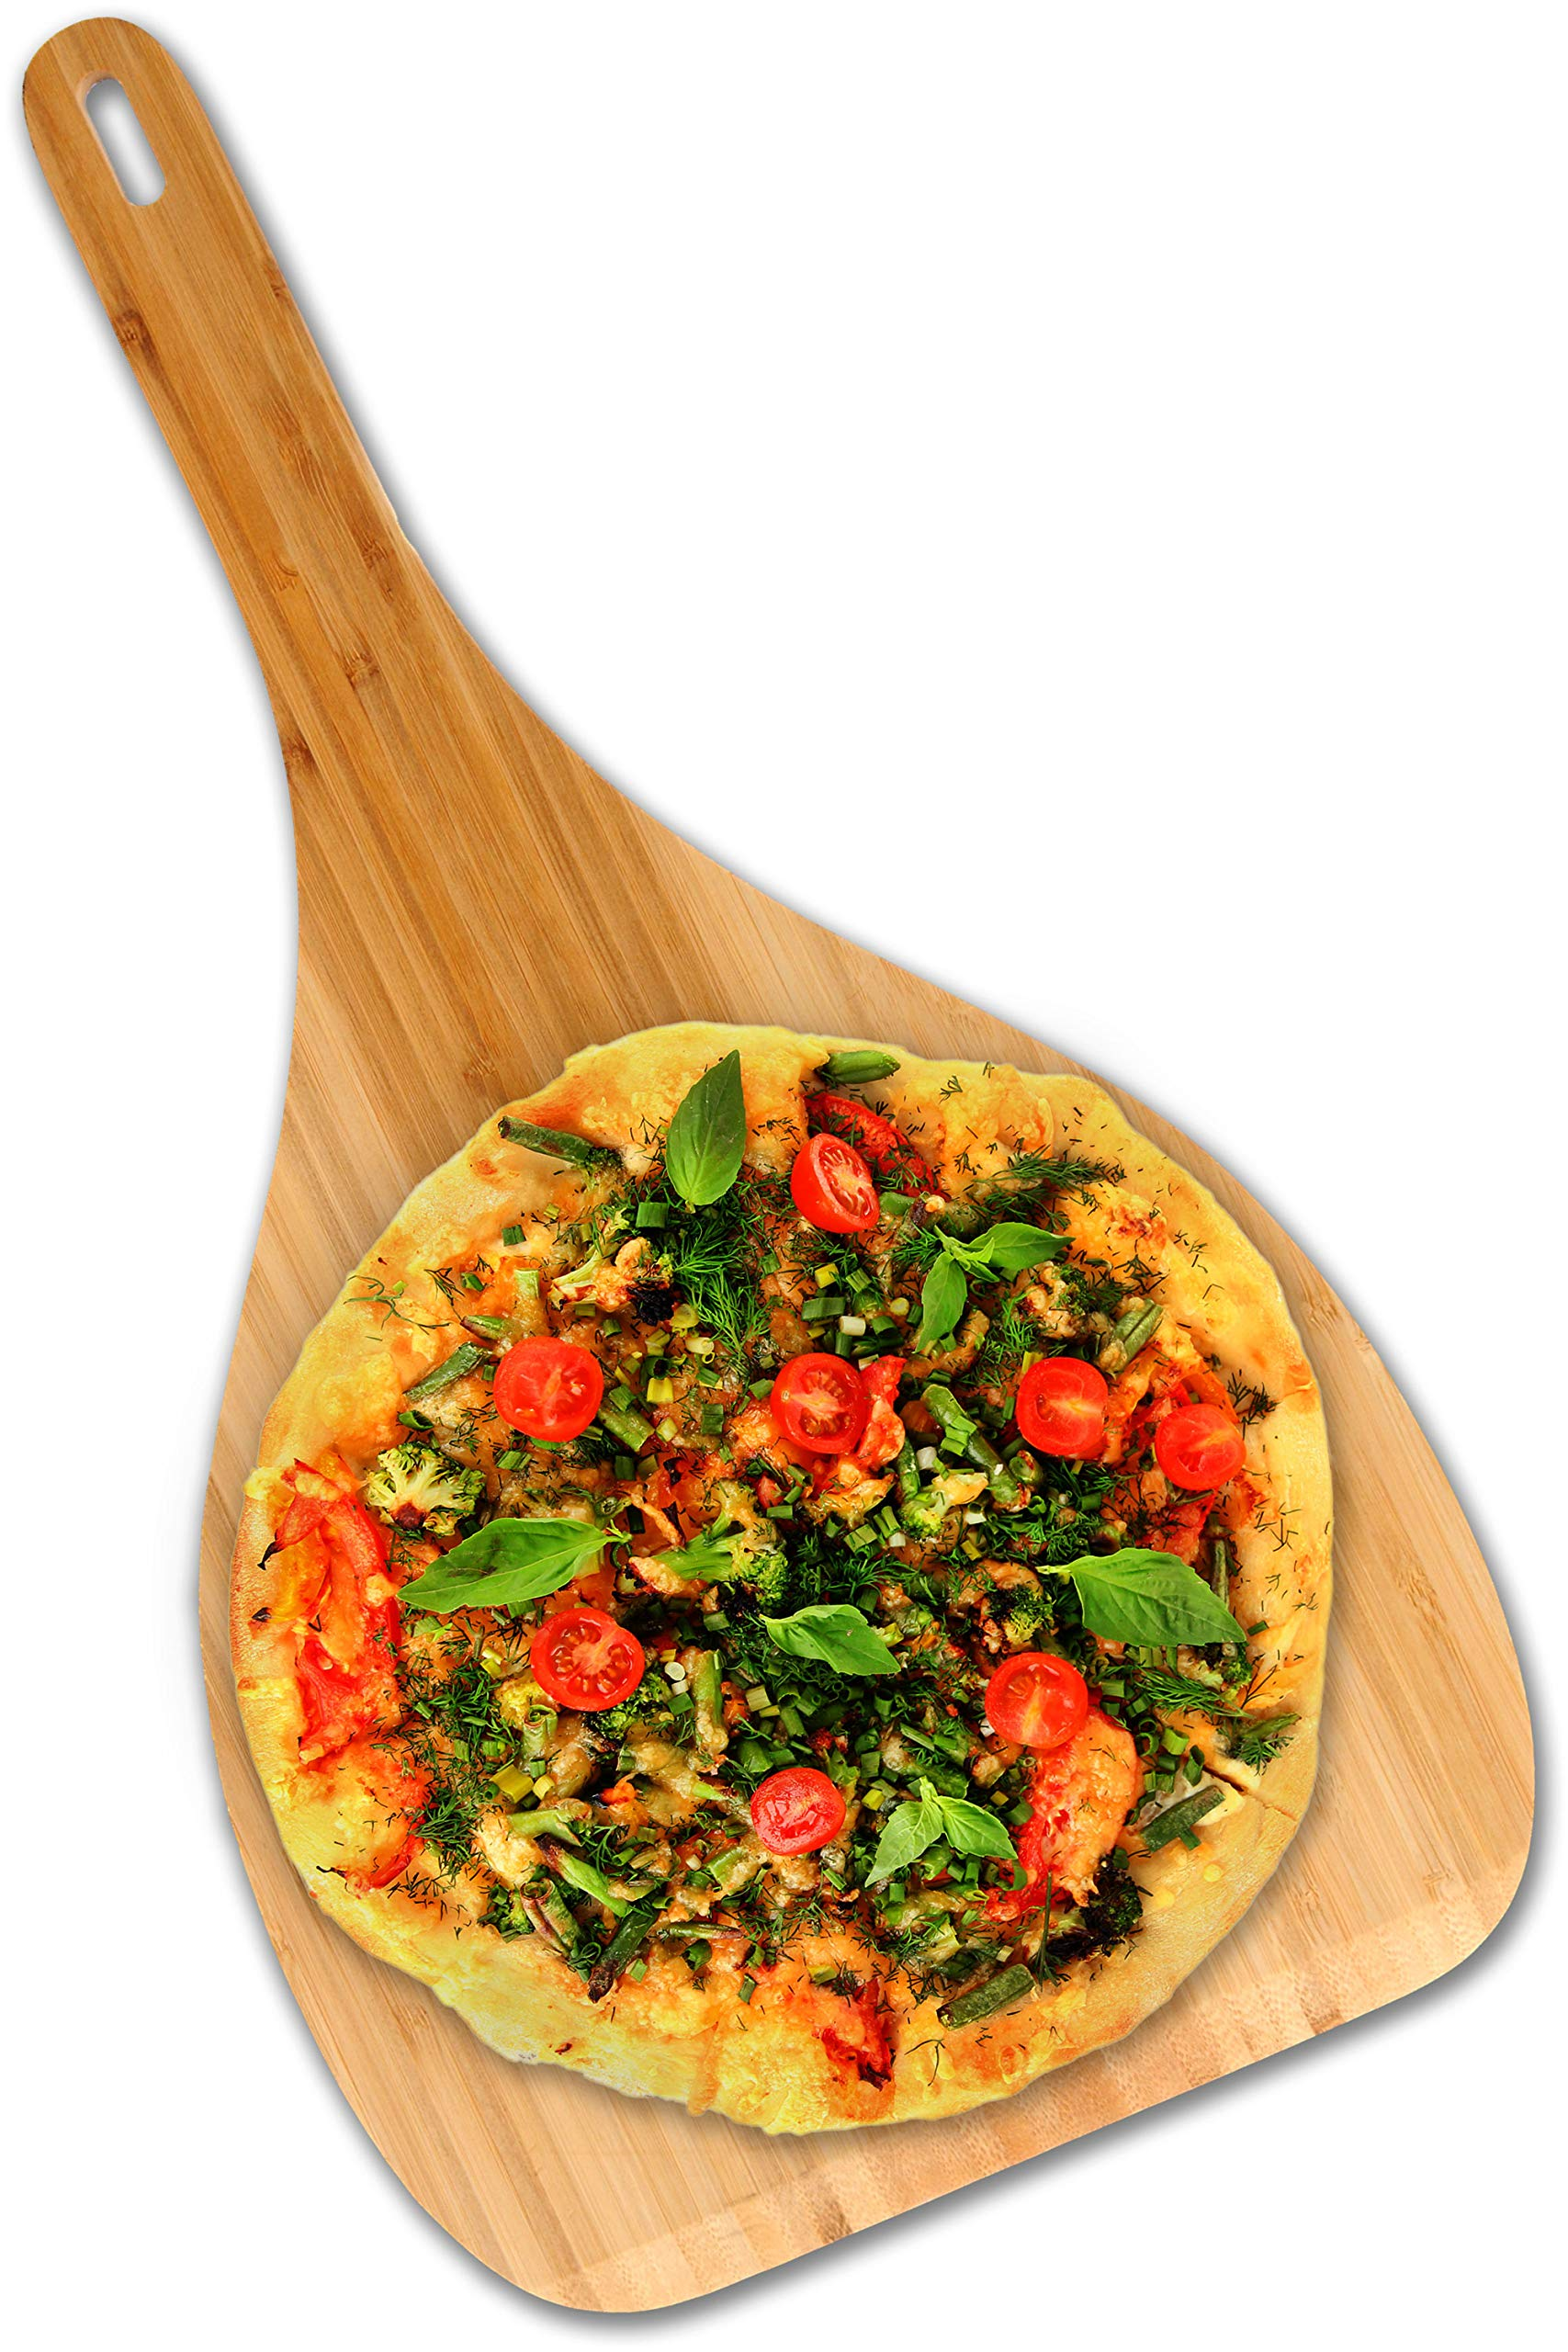 Pizza Peel and Pizza Paddle: Organic Bamboo Pizza Spatula. Unique Euro-design Pizza Cutting Board. This Gorgeous Wood Pizza Paddle for Oven or Grill Makes an Ideal Gift and Serving Board.